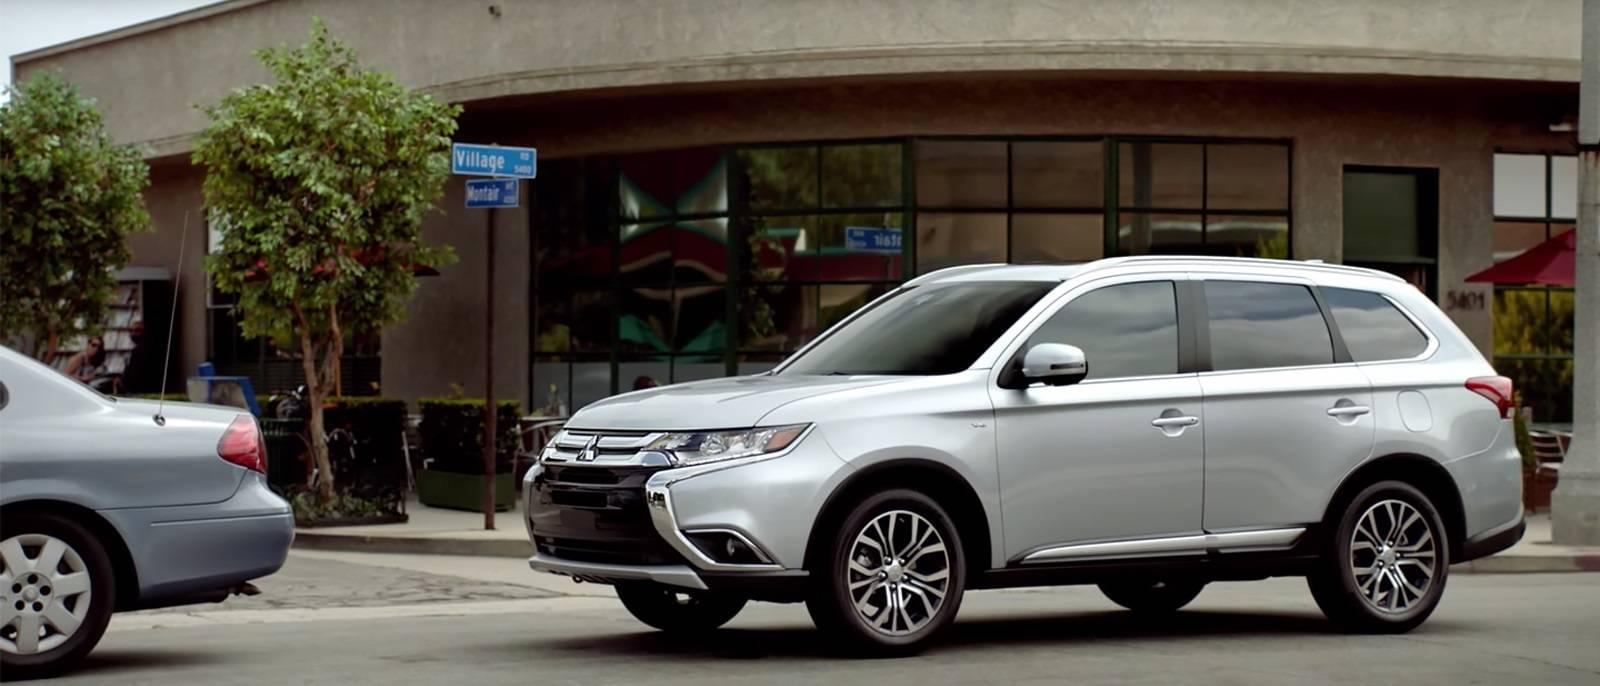 video-thumb-forward-collision-mitigation-2017-Mitsubishi-Outlander-d1